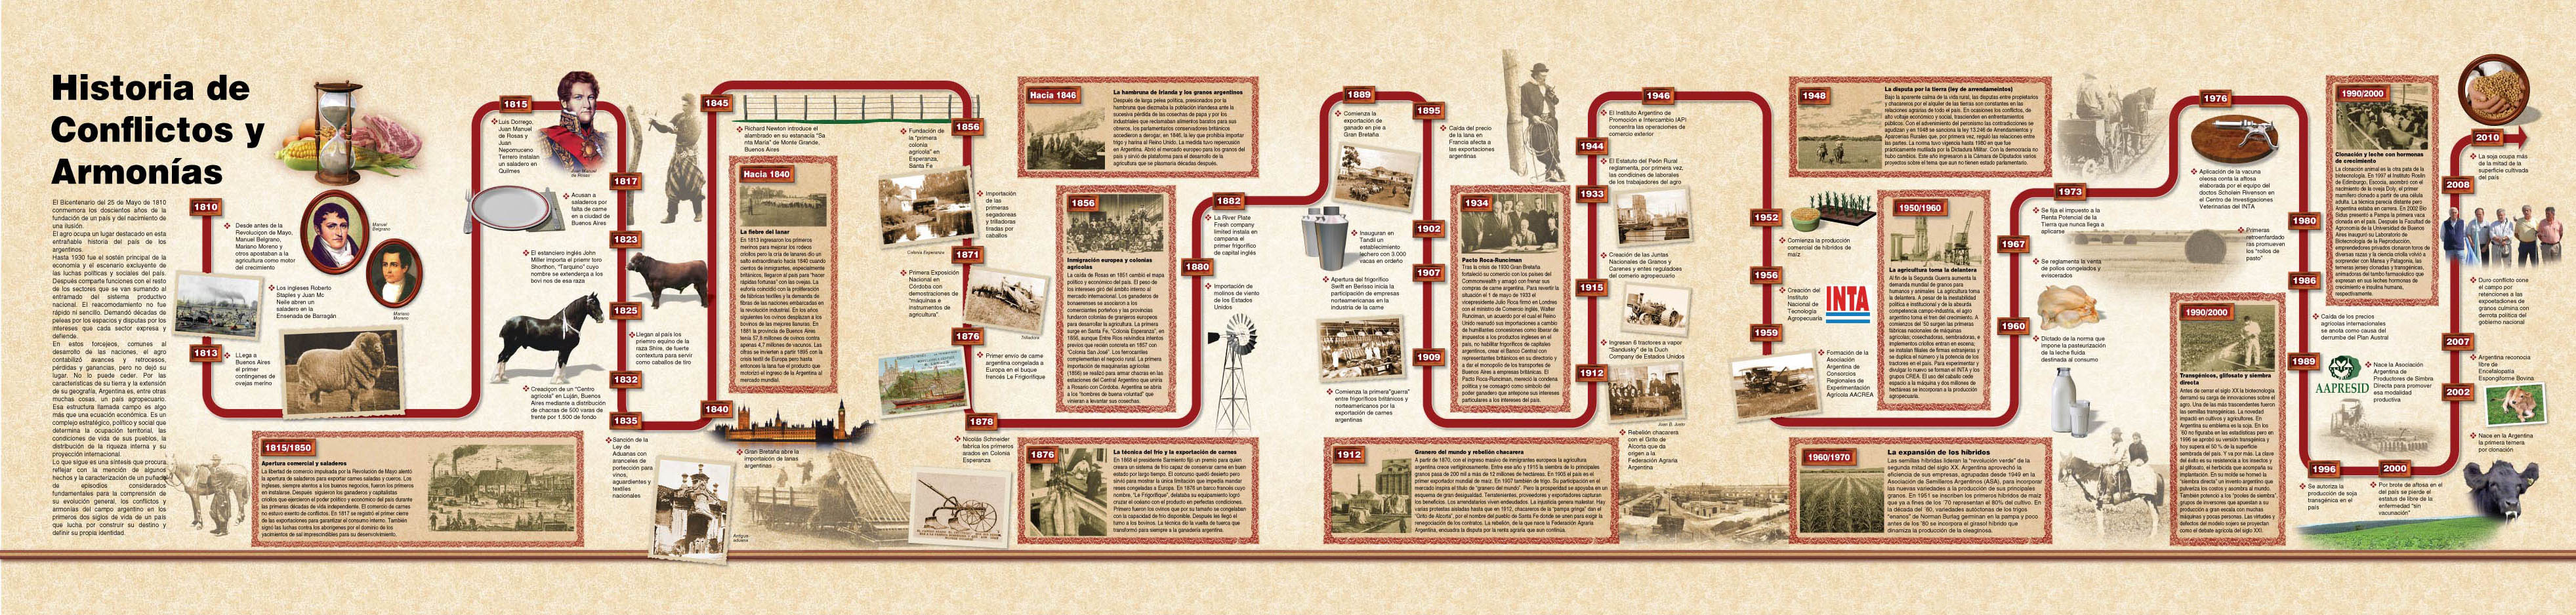 History of conflict and harmonies